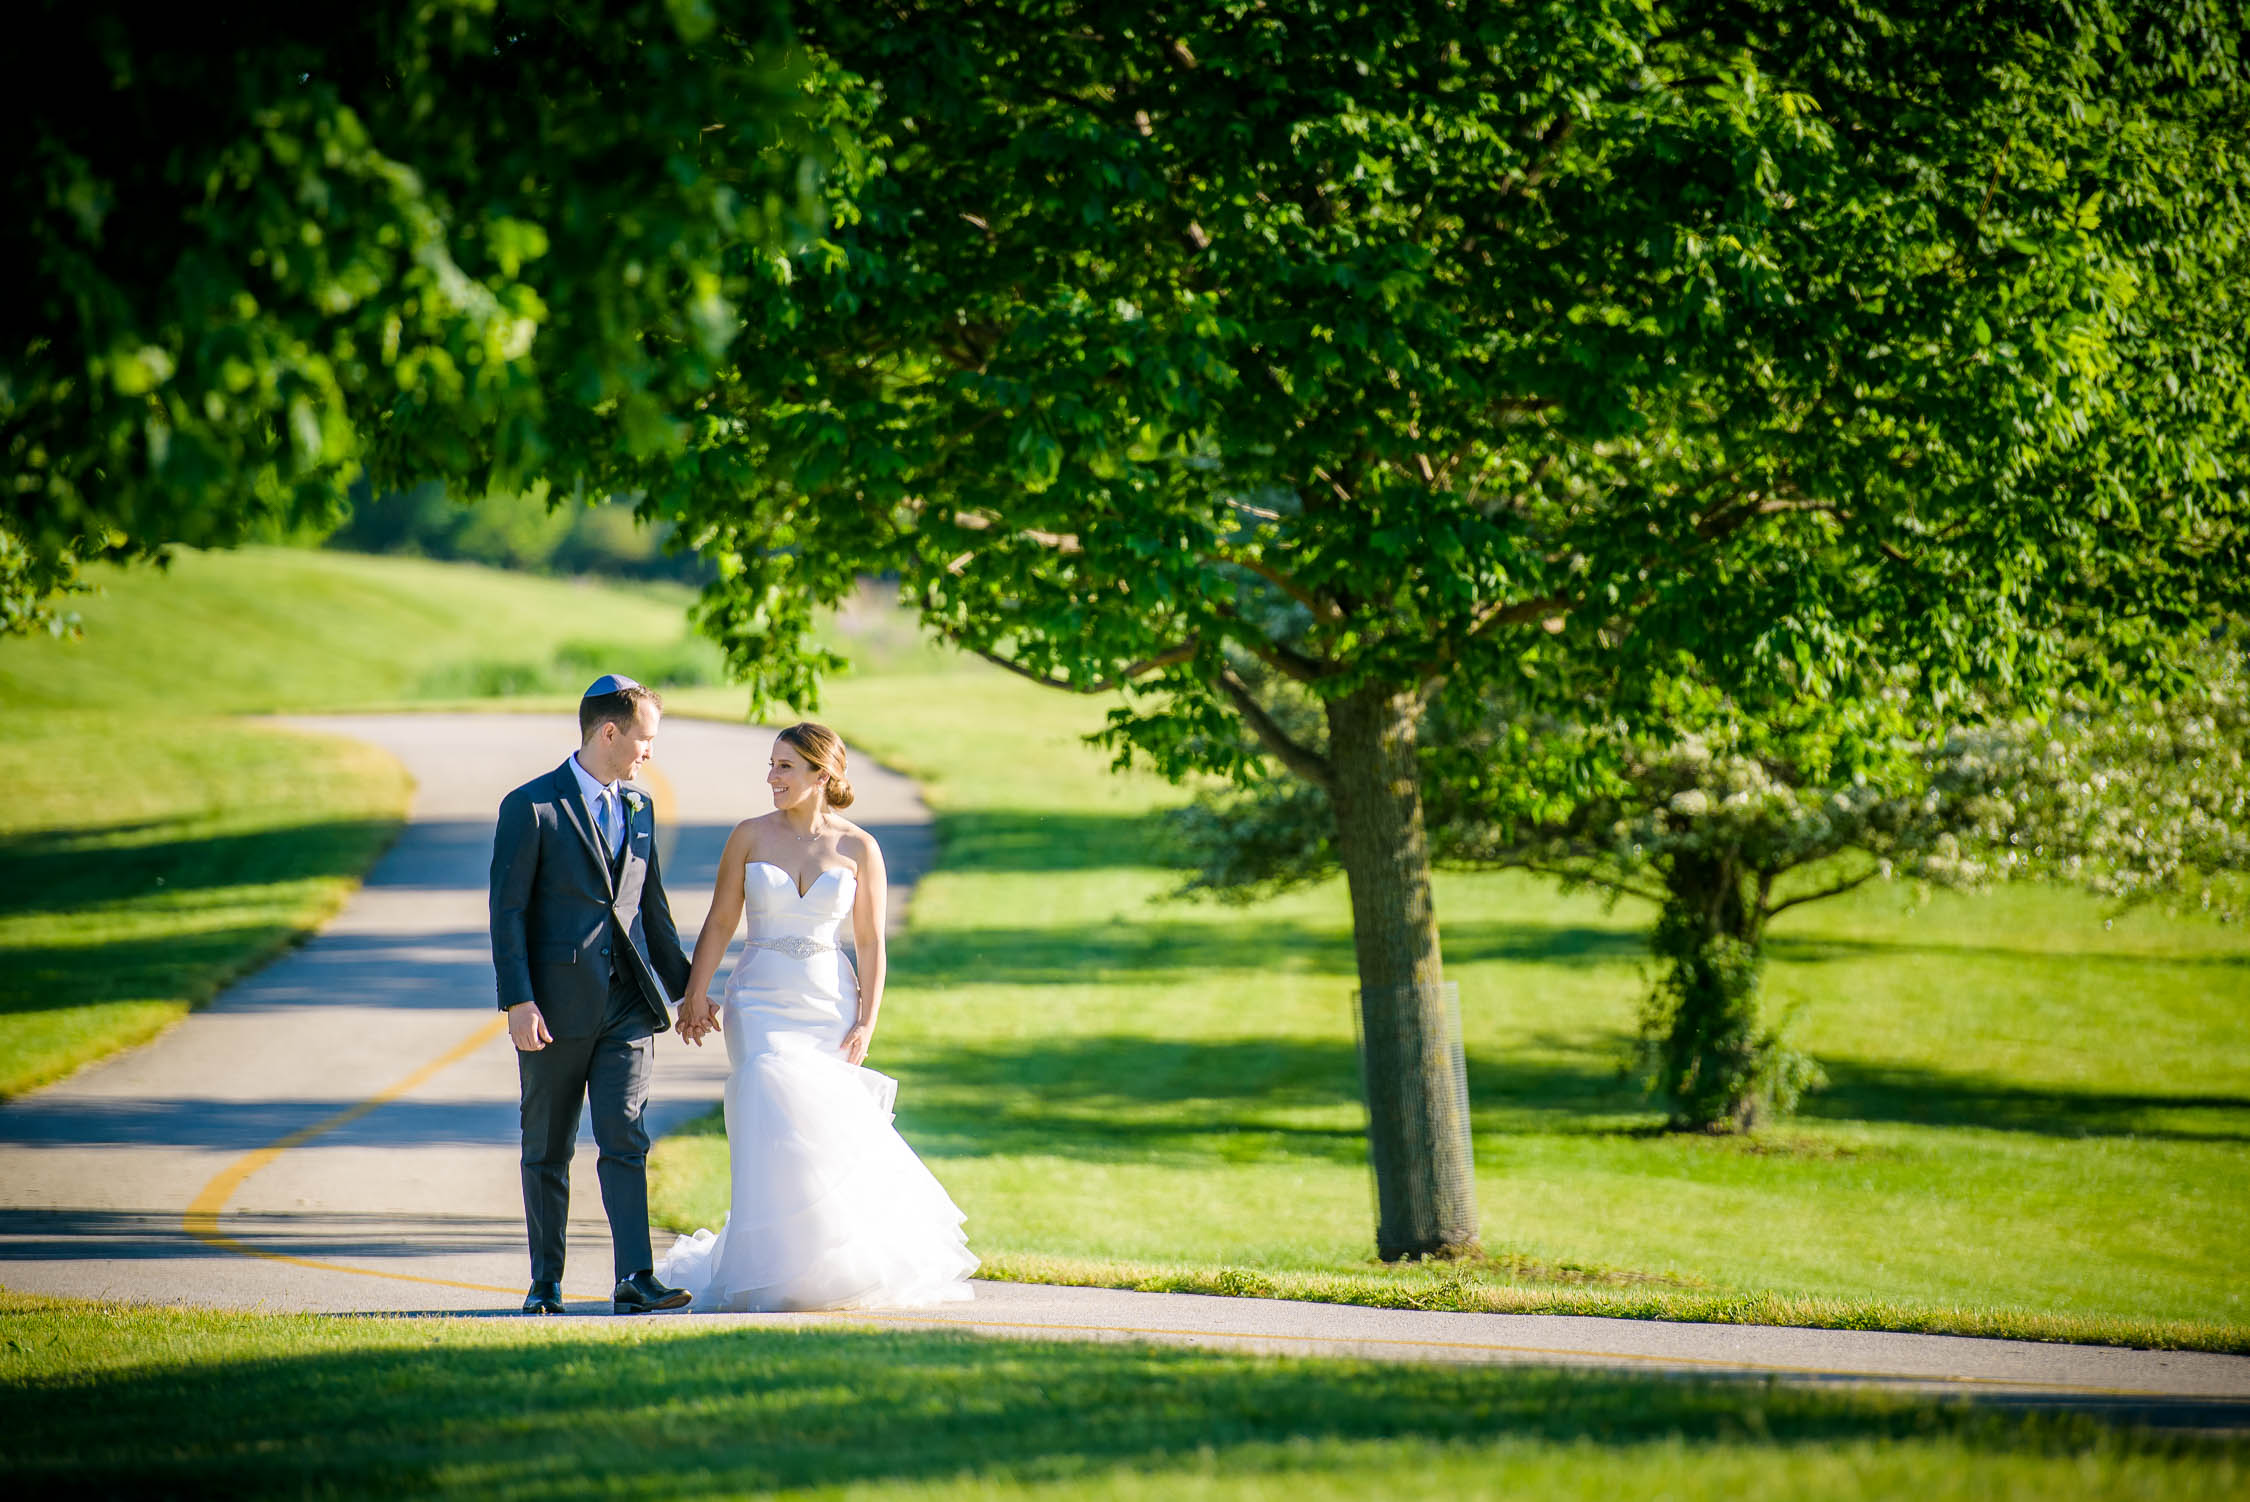 Bride and groom walk together on their wedding day at Independence Grove in Libertyville.